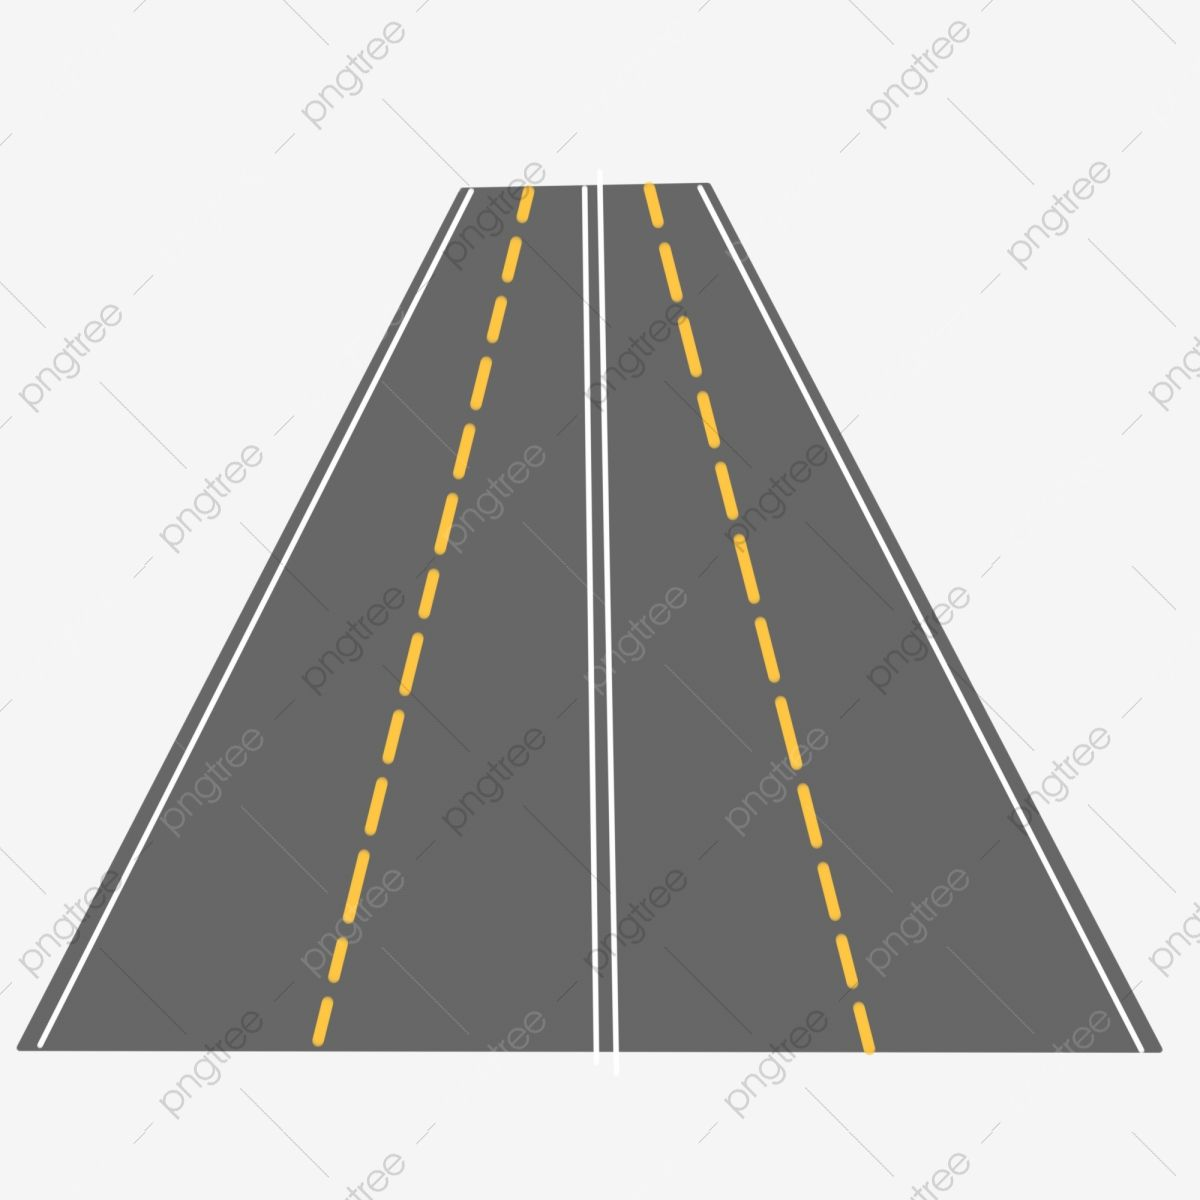 Black Oil Cypress Road Pattern Illustration Road Clipart Straight Road Yellow Dividing Line Png Transparent Clipart Image And Psd File For Free Download Pattern Illustration Black Oil Clipart Images